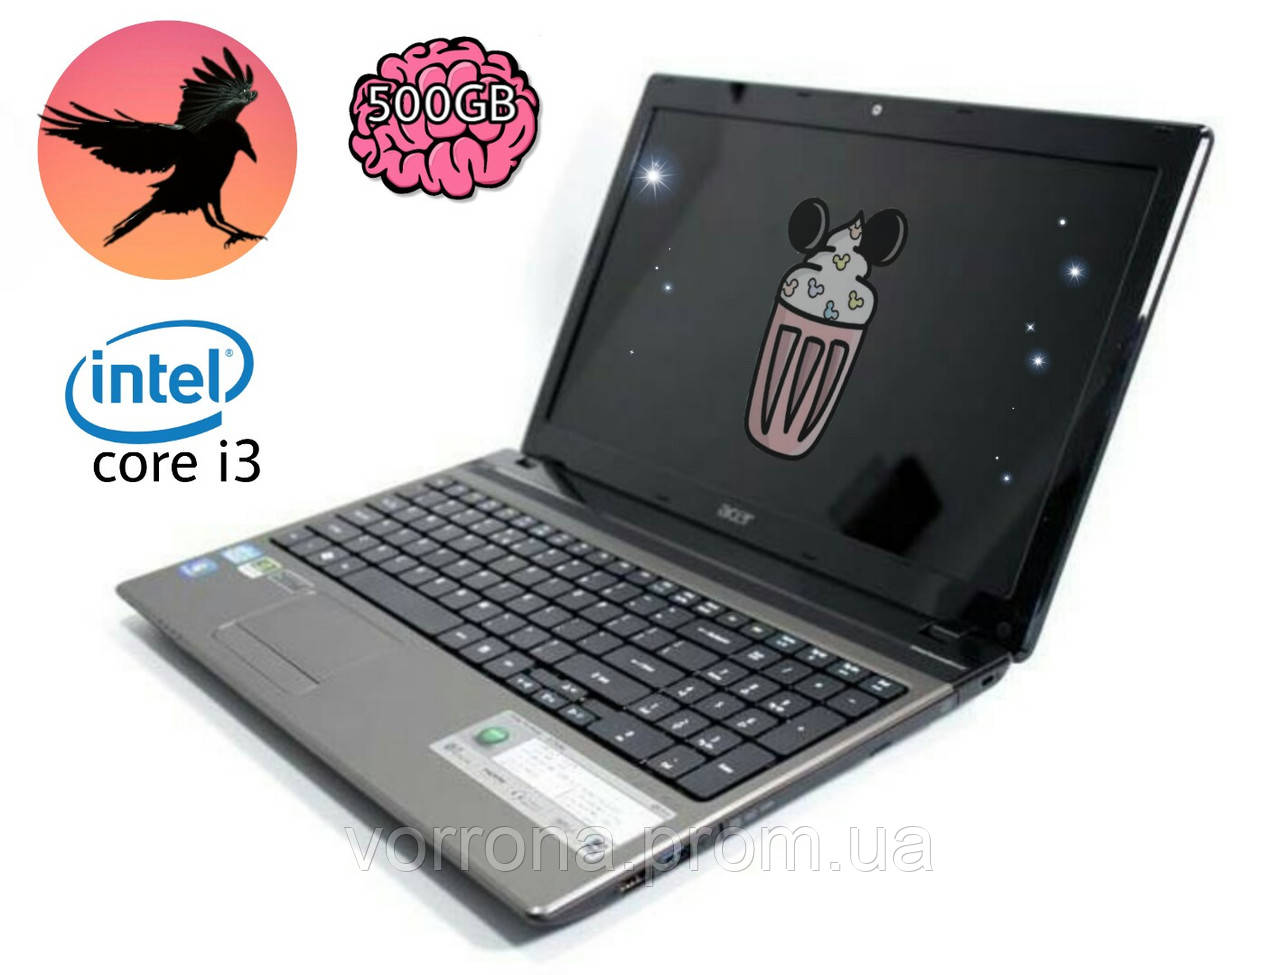 ACER ASPIRE 5750Z INTEL GRAPHICS TELECHARGER PILOTE